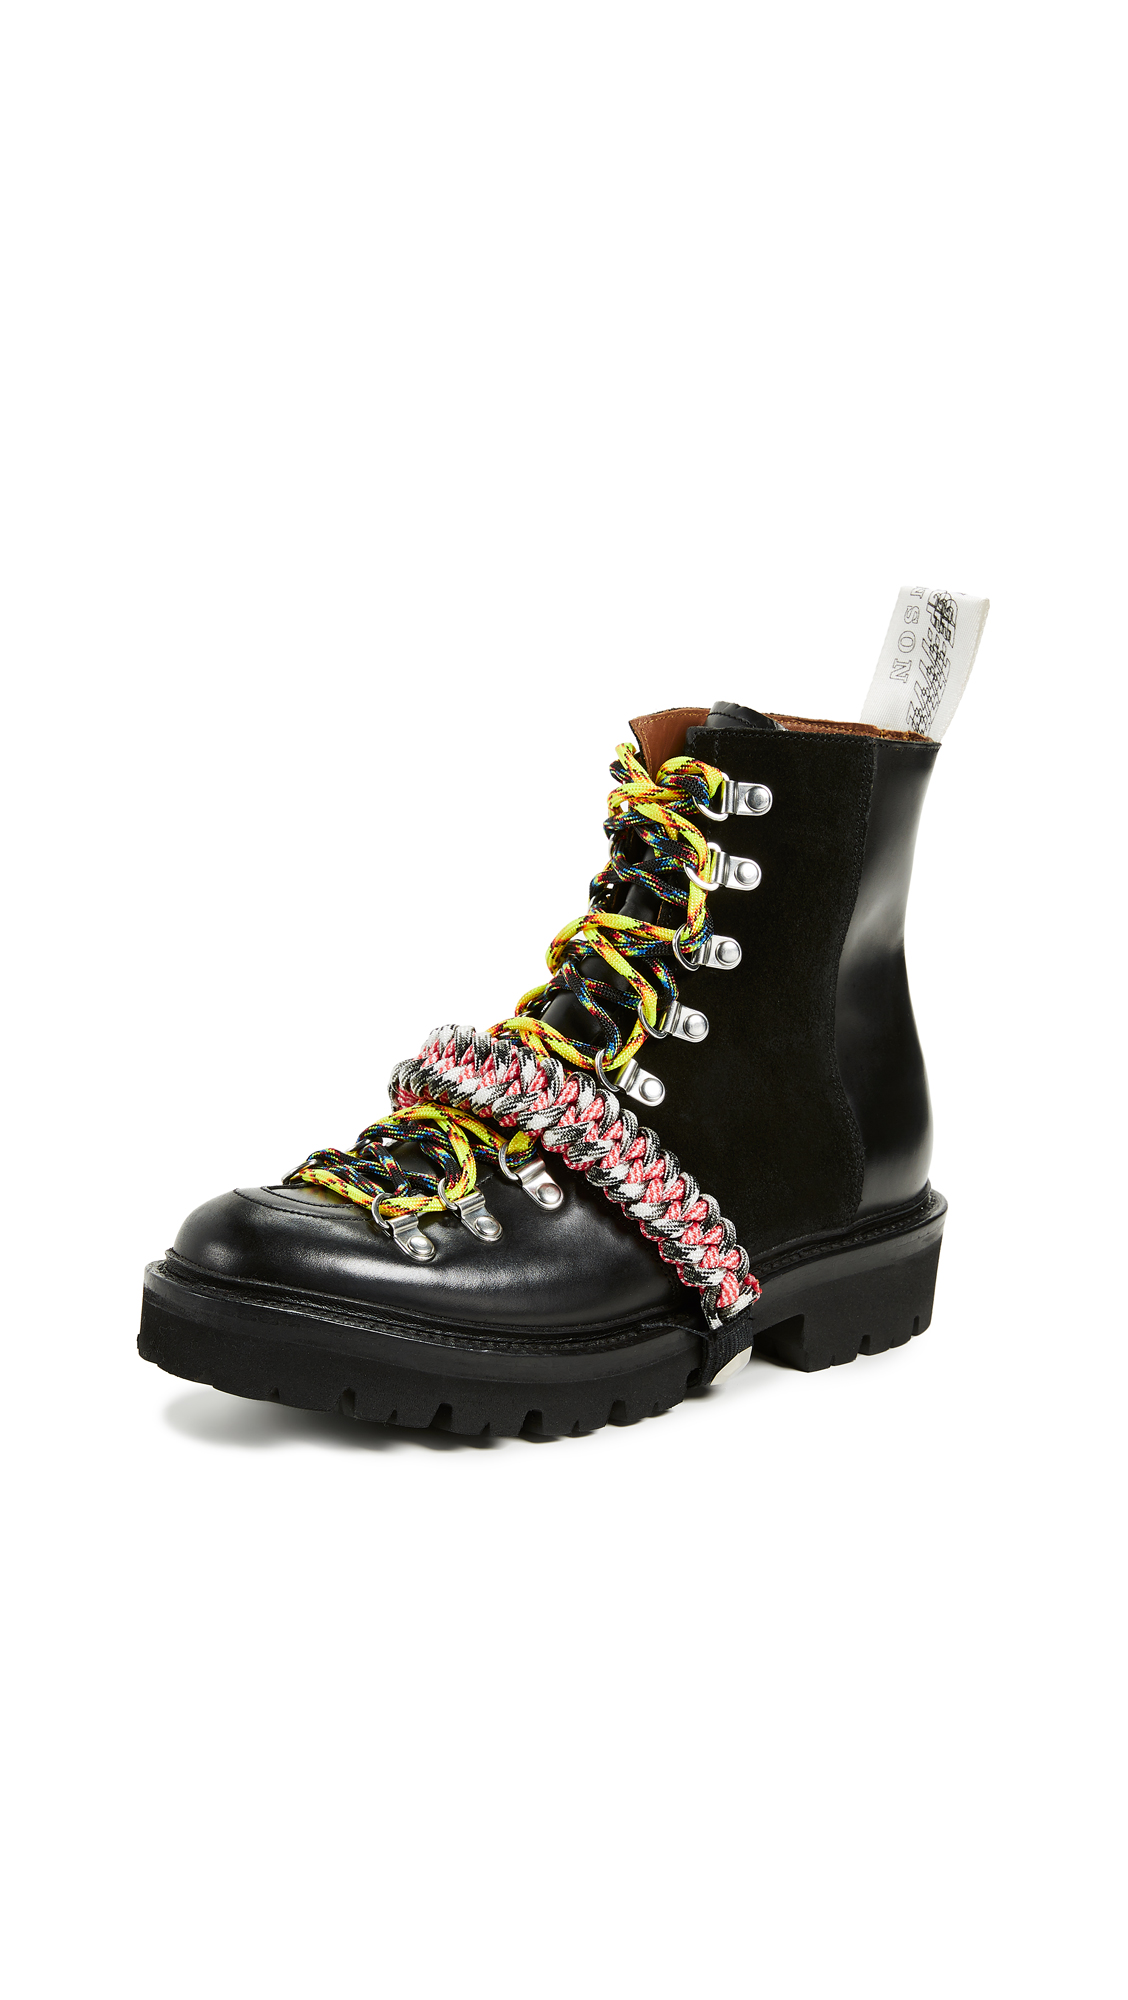 Grenson x House of Holland Vivid Combat Boots - Black Nanette